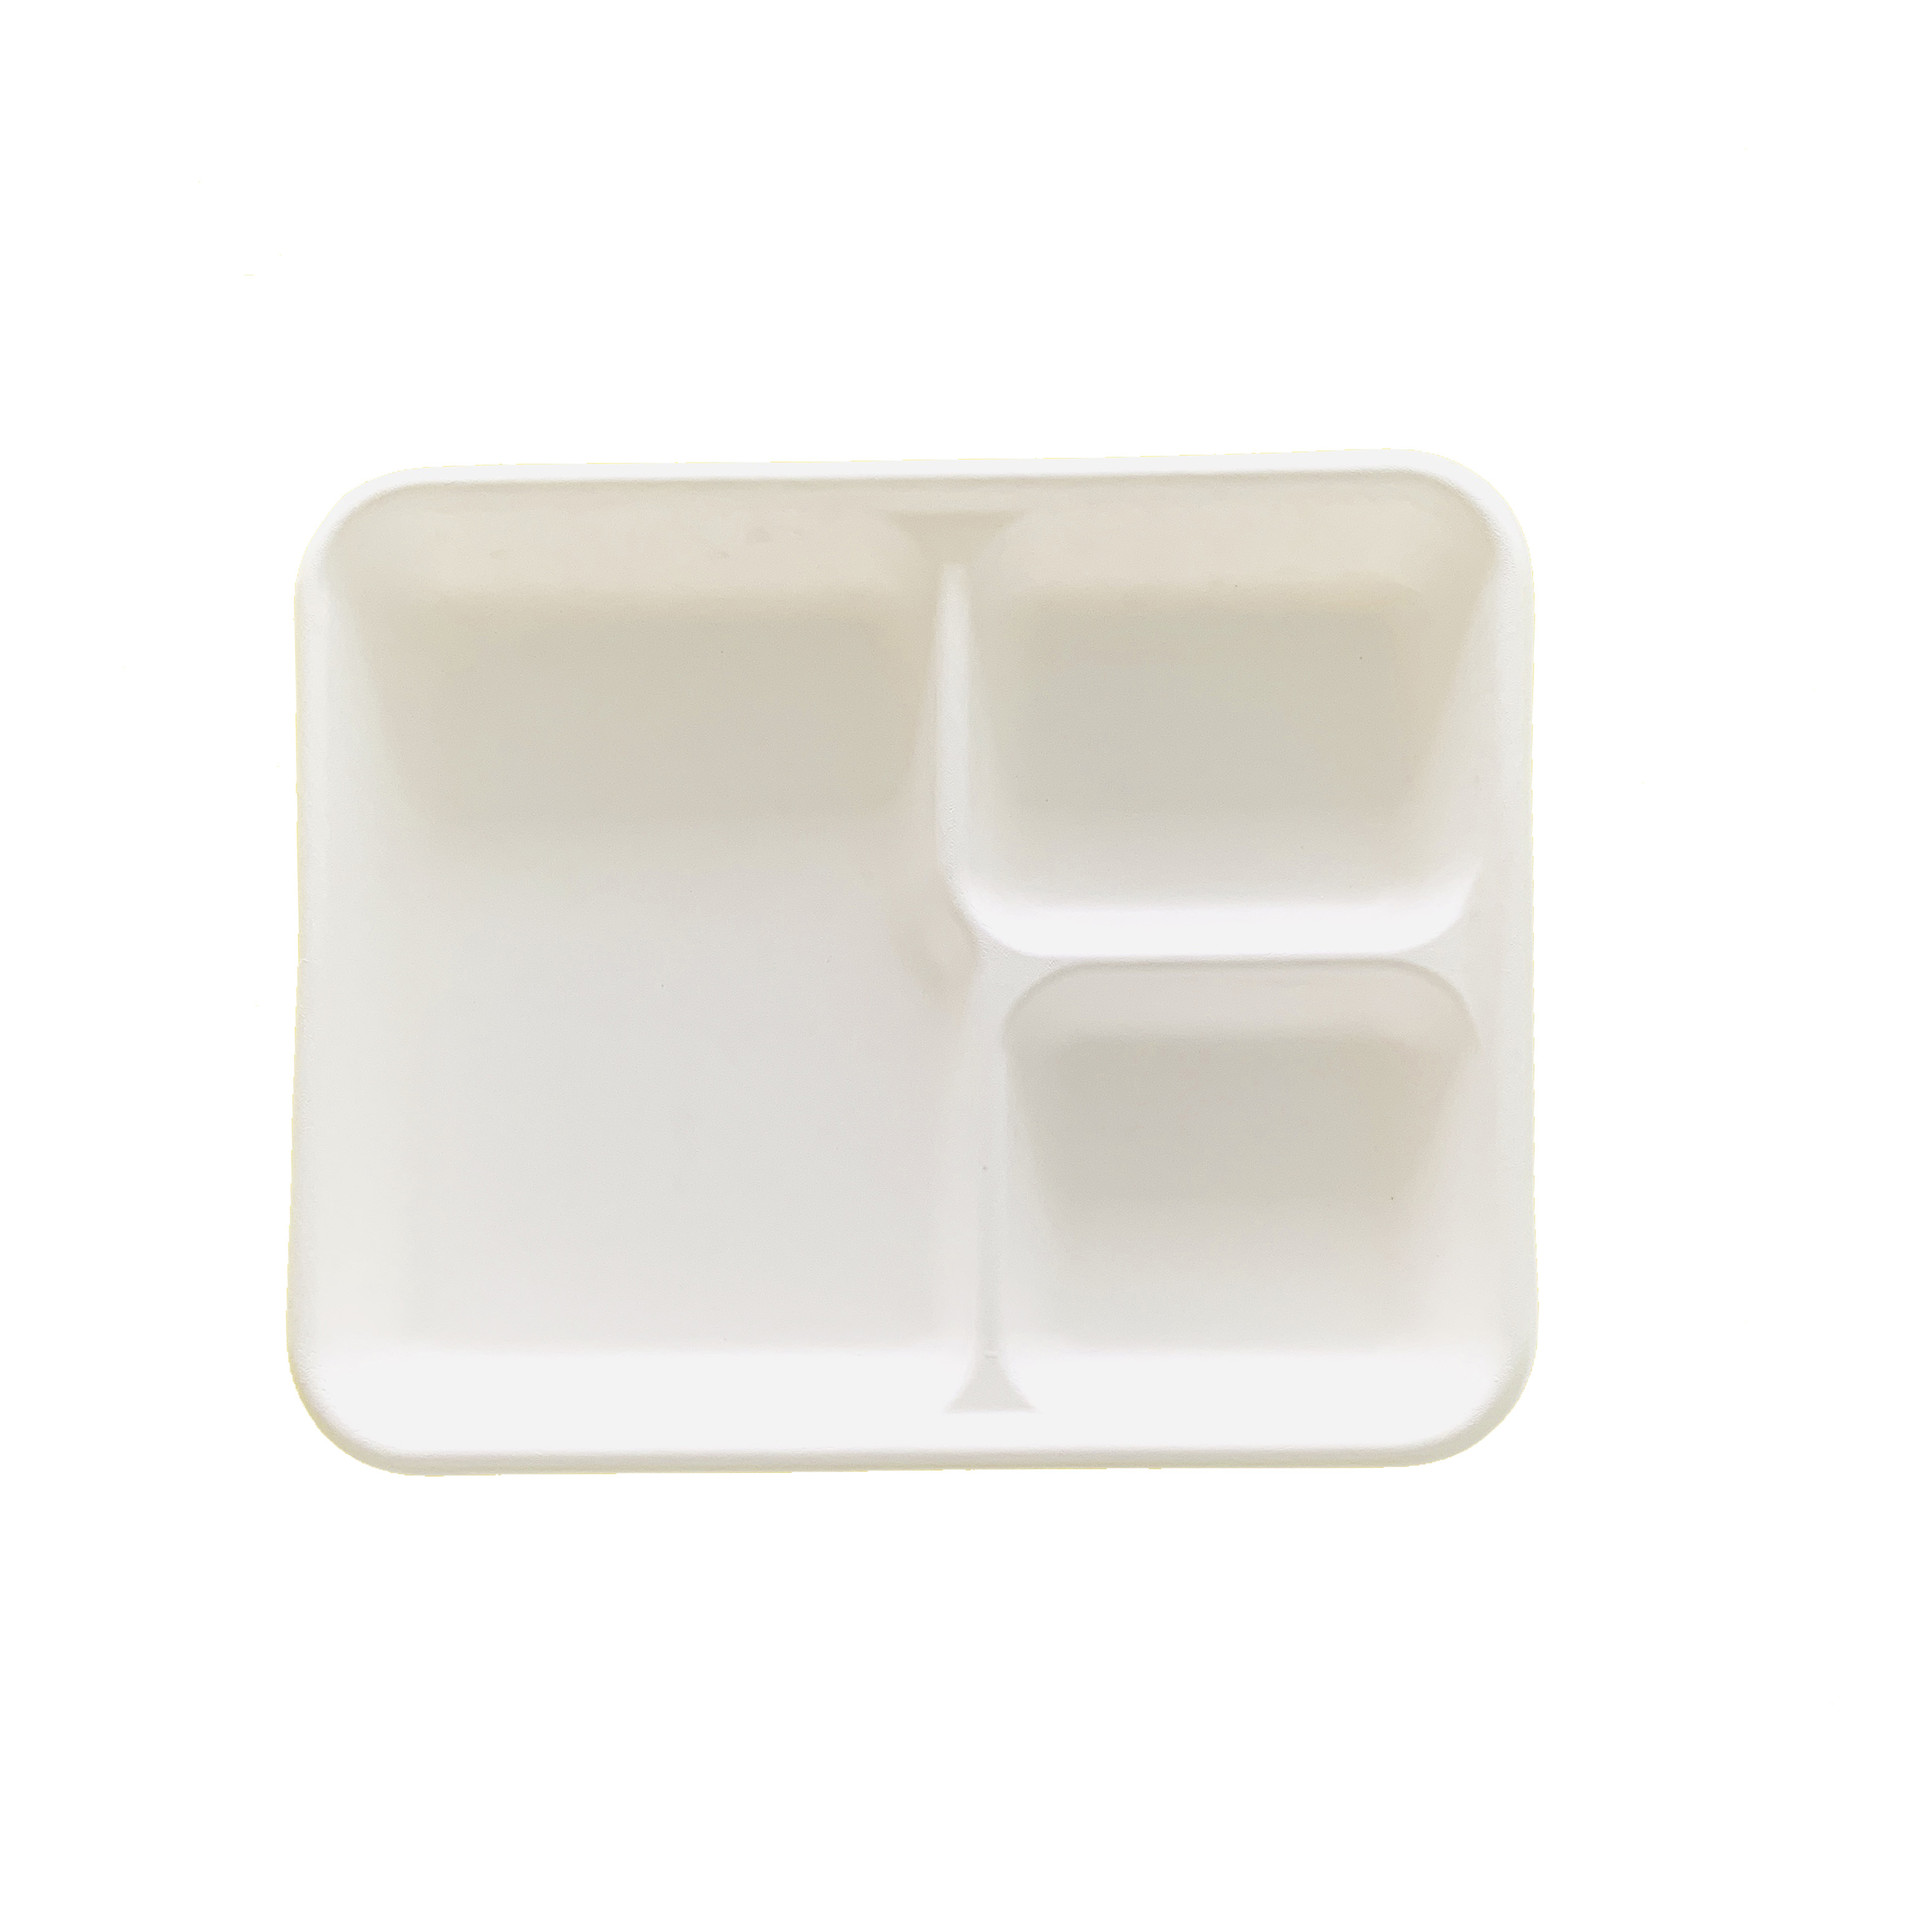 3 Divided Biodegradable Compartment Sugarcane Bagasse White Tray